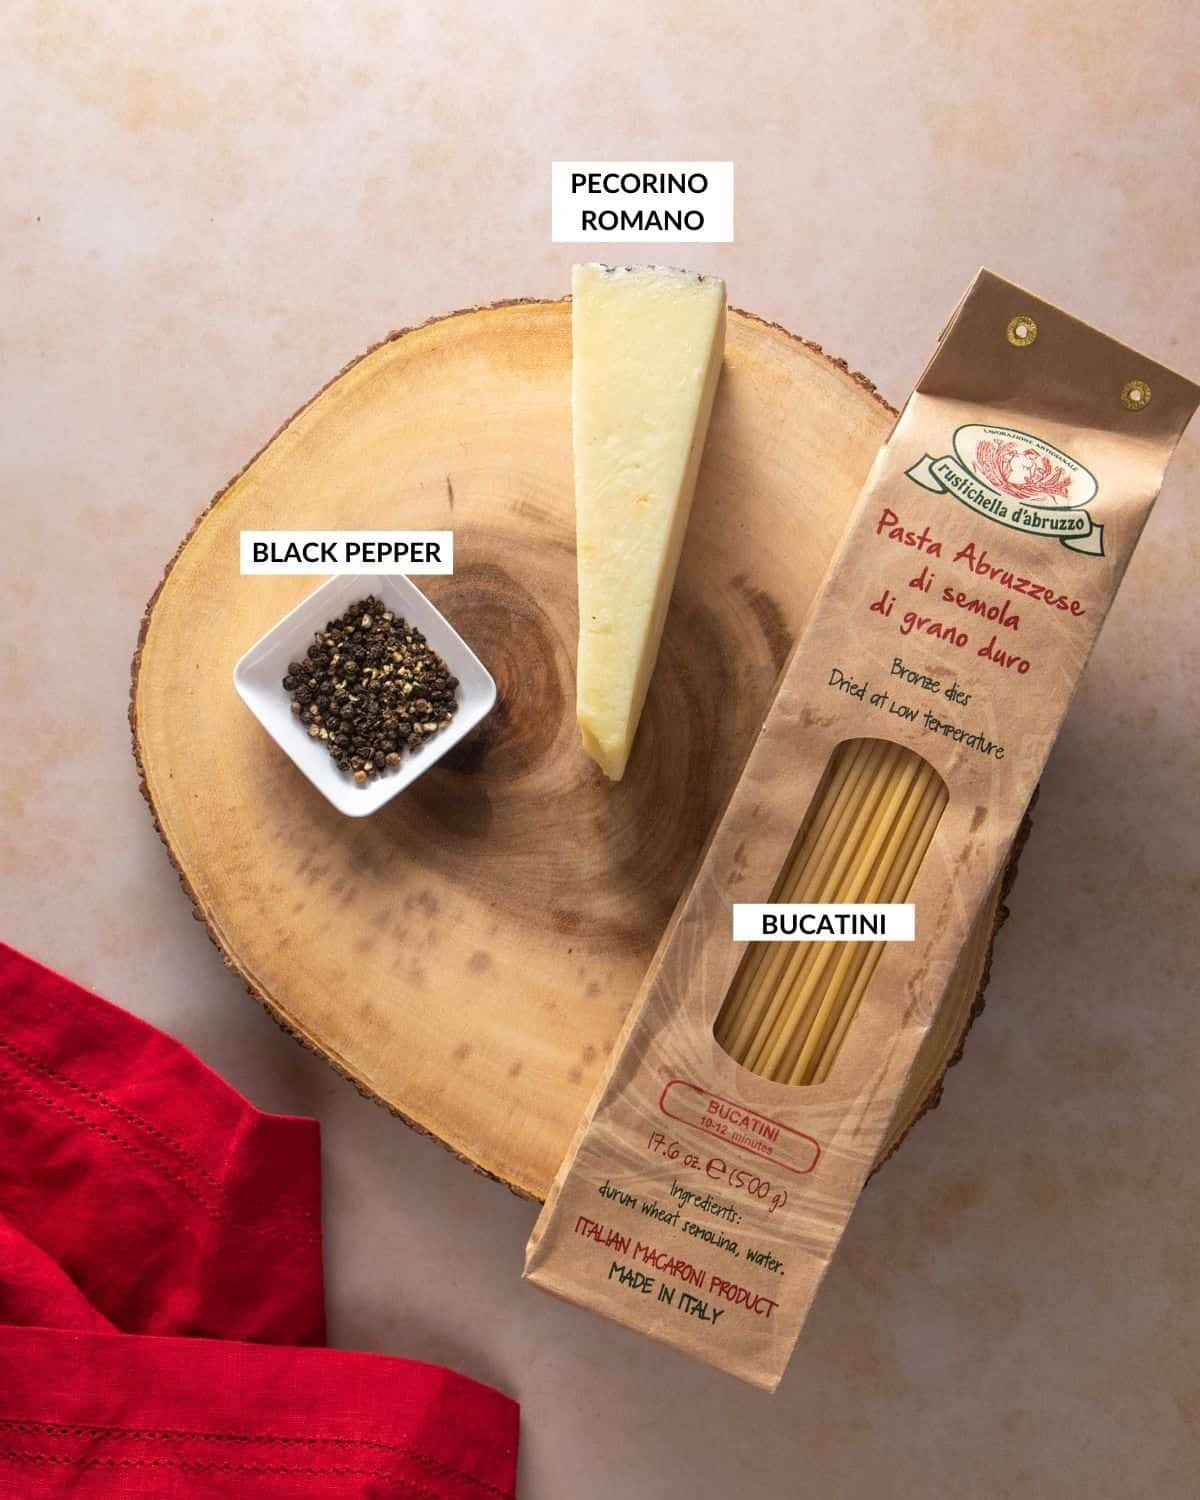 Labeled ingredient list showing black pepper, Pecorino Romano and bucatini pasta - check recipe card for details!